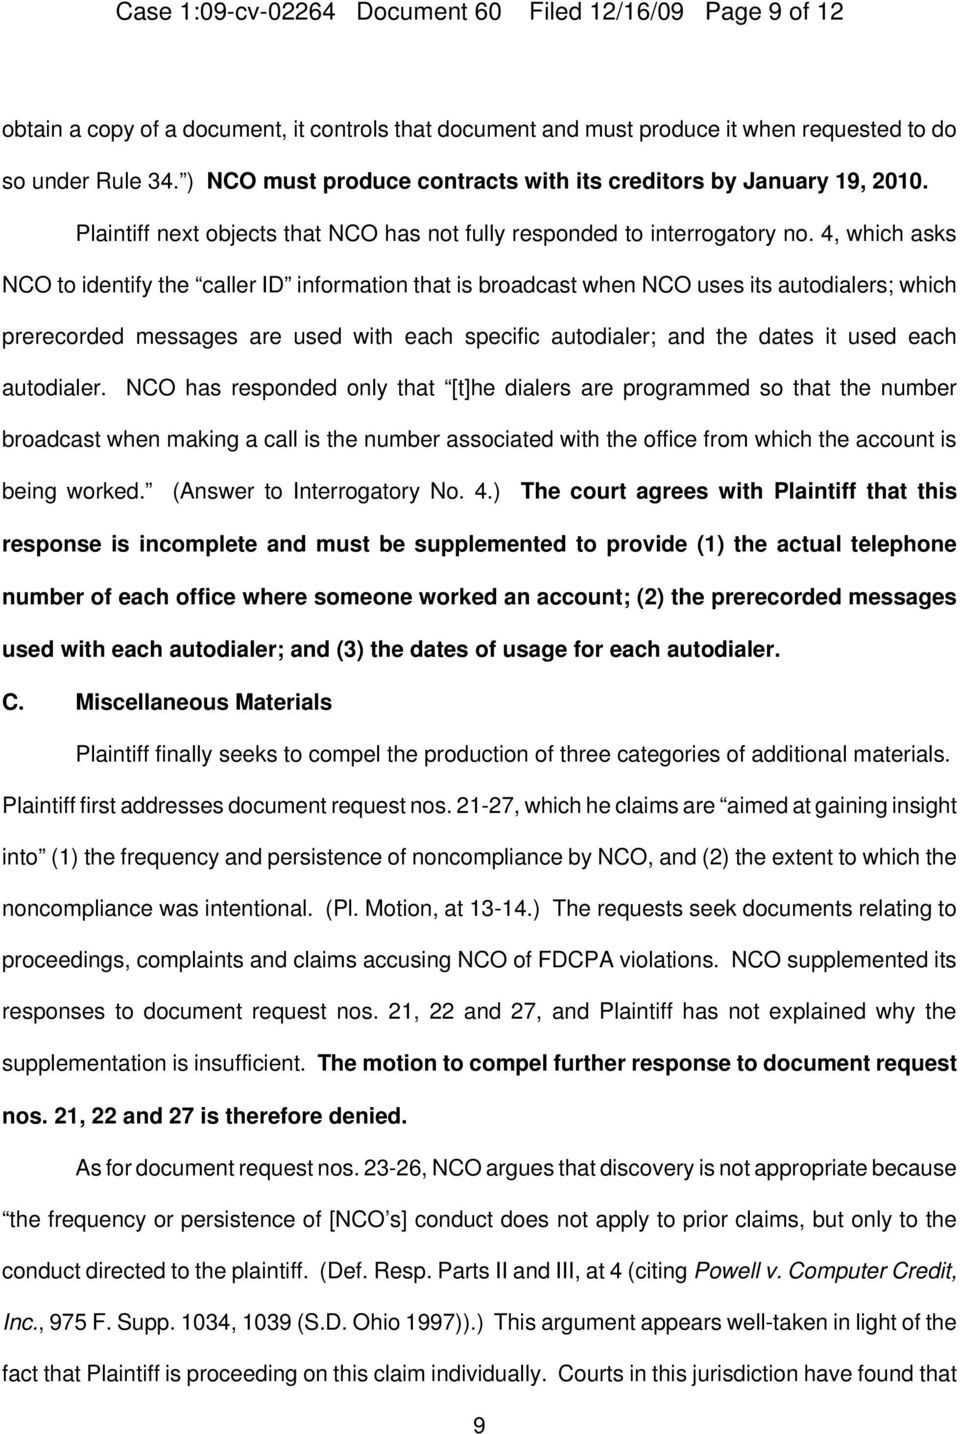 4, which asks NCO to identify the caller ID information that is broadcast when NCO uses its autodialers; which prerecorded messages are used with each specific autodialer; and the dates it used each